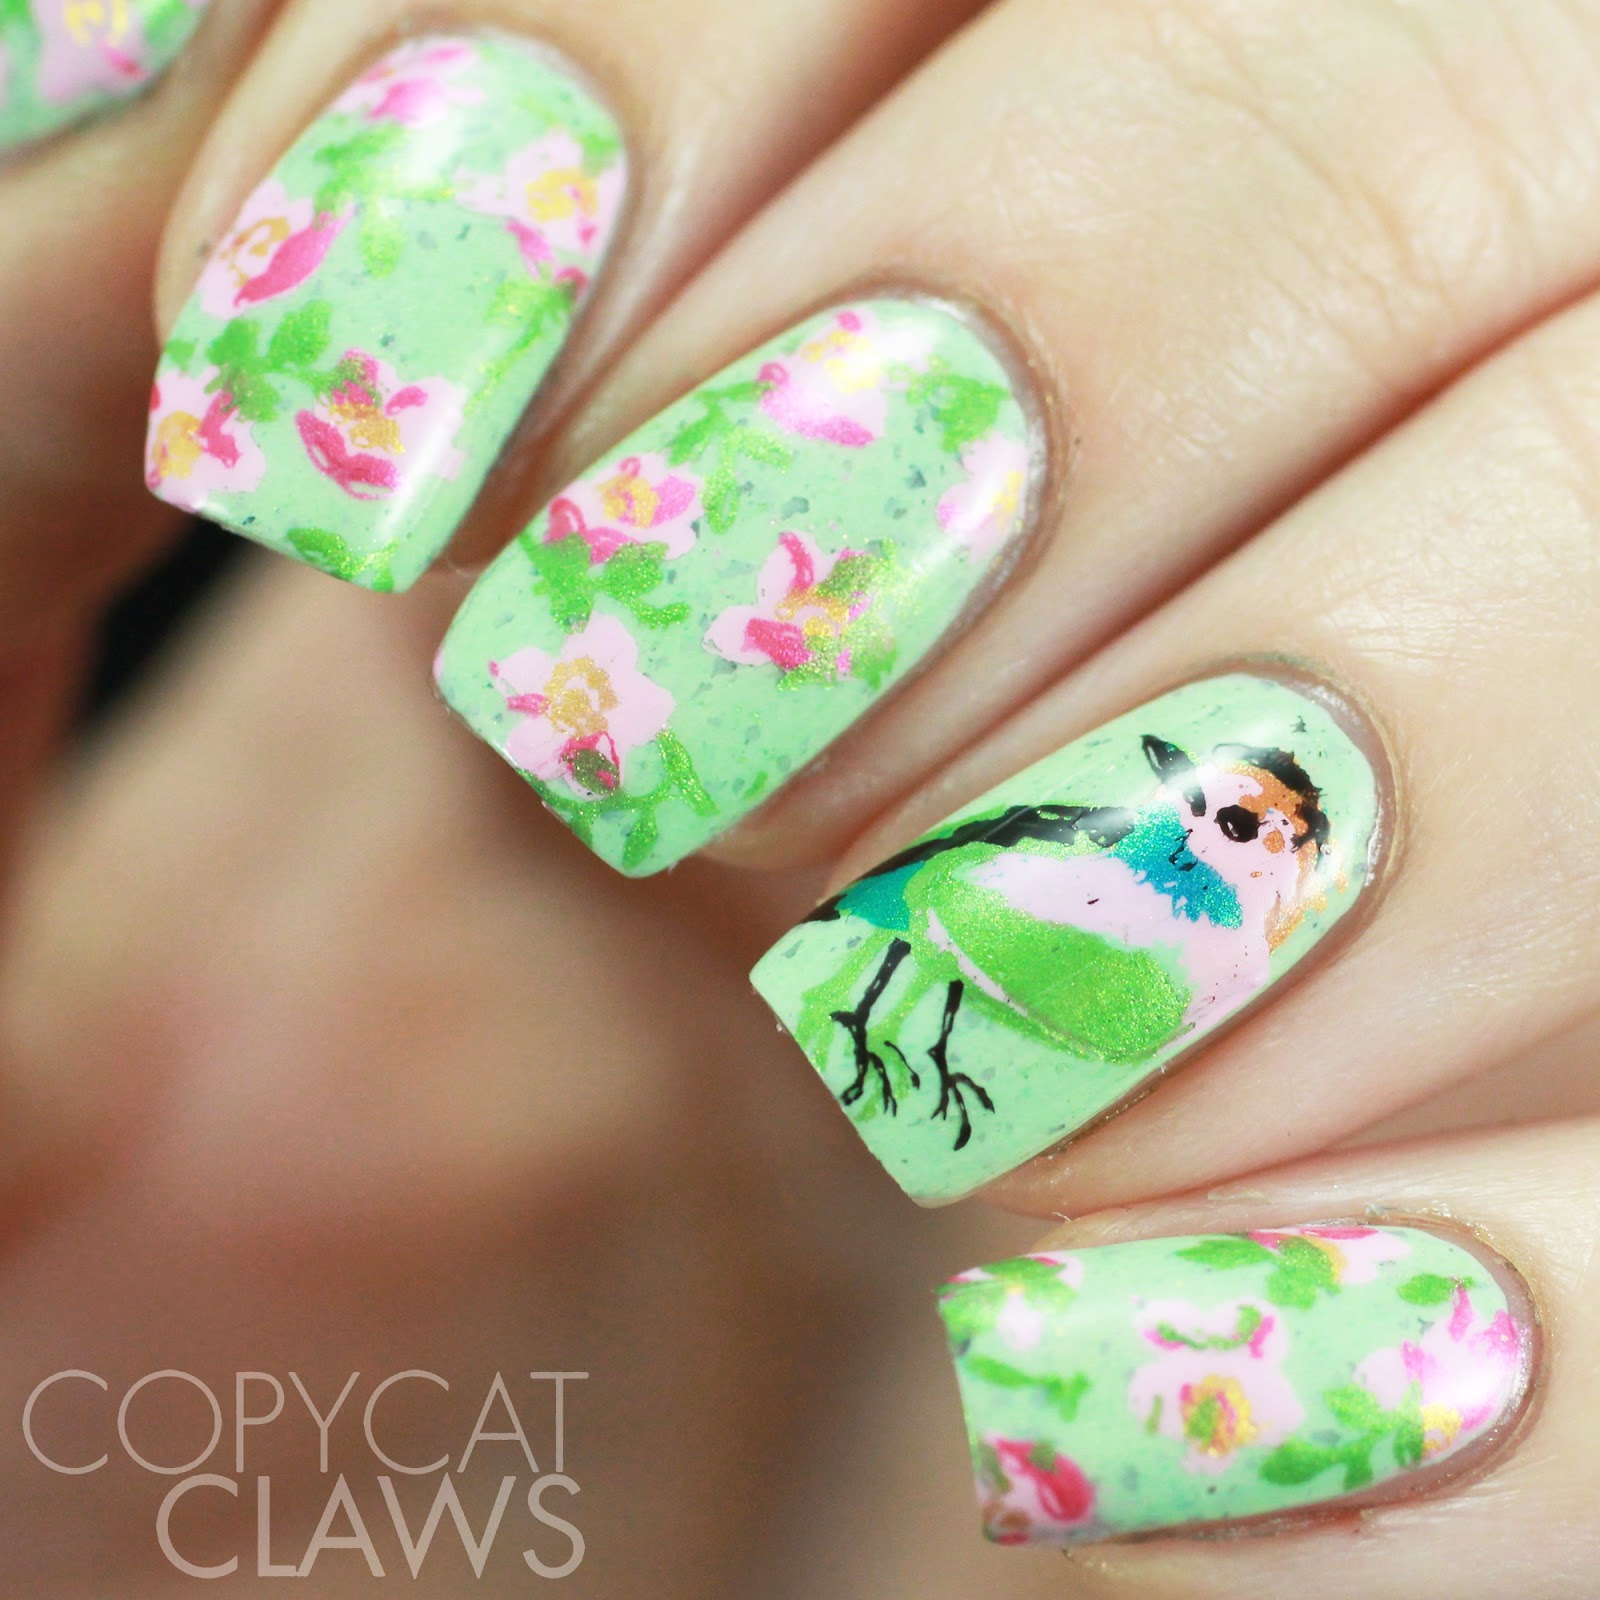 Copycat Claws: Cici & Sisi Fruit and Flower Acrylic Stamping Plates